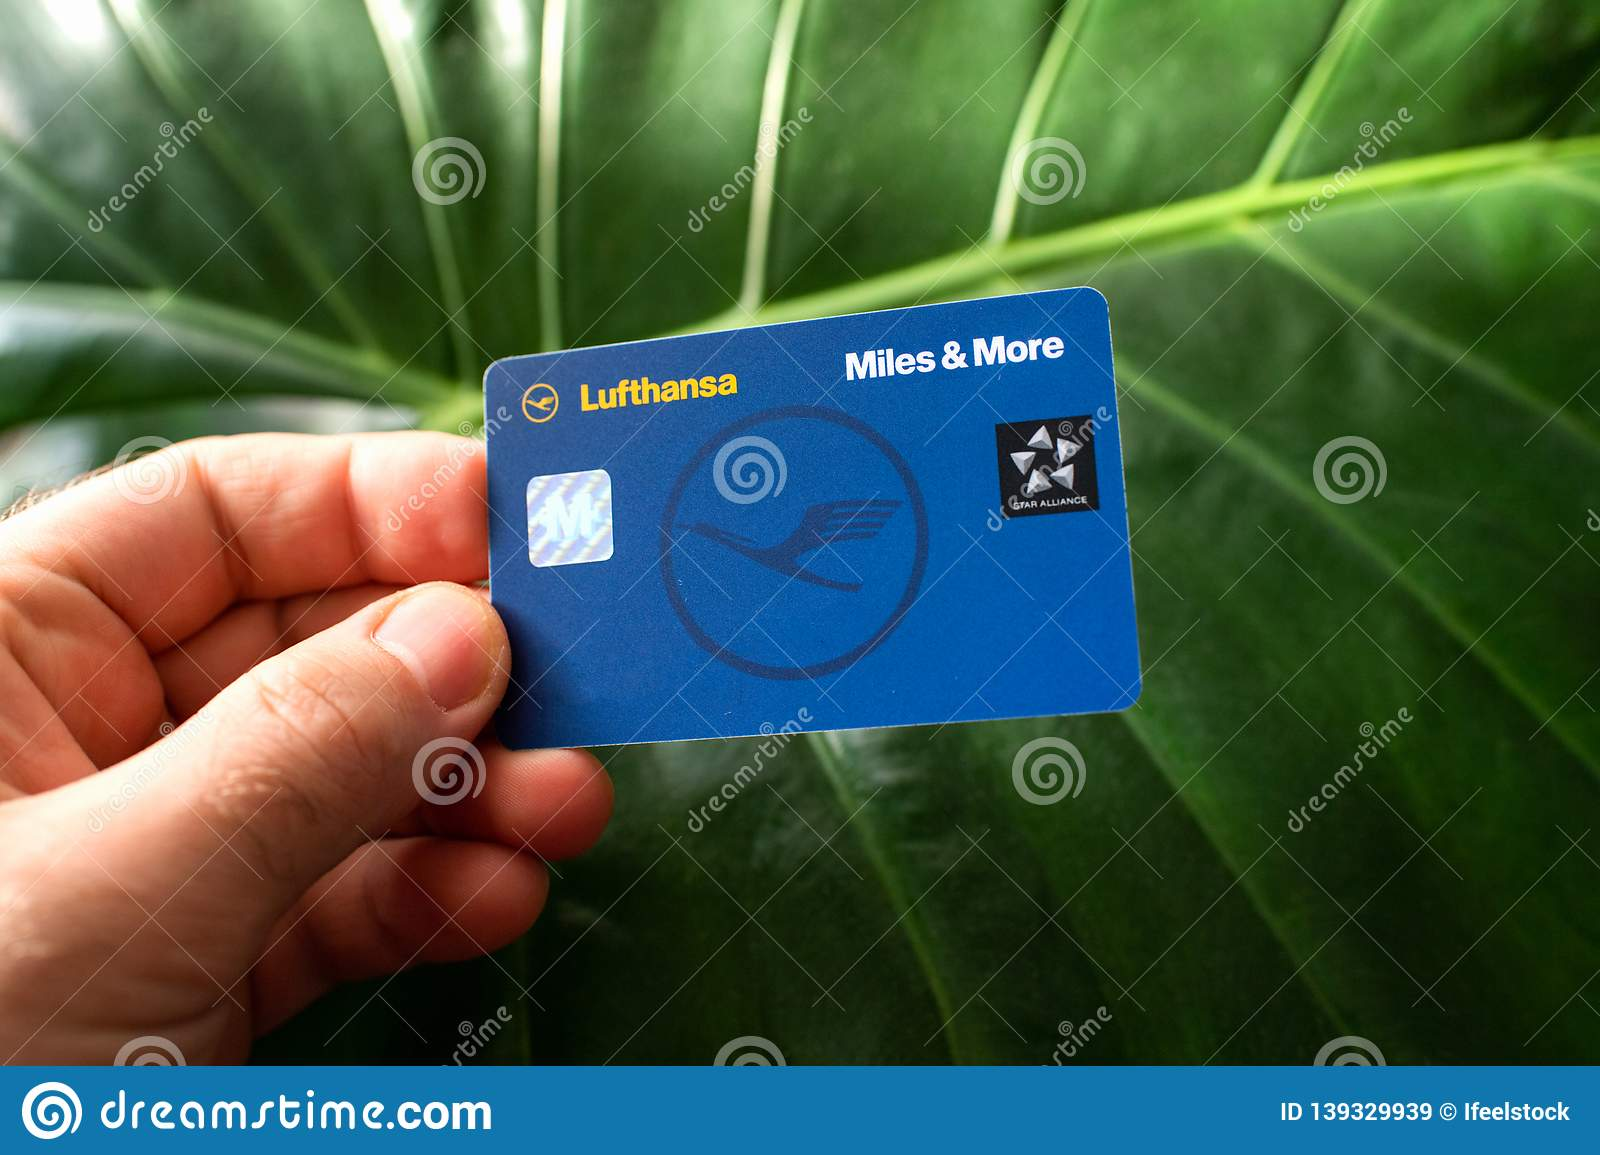 Miles And More Business Male Hand Holding Miles And More Membership Lufthansa Card